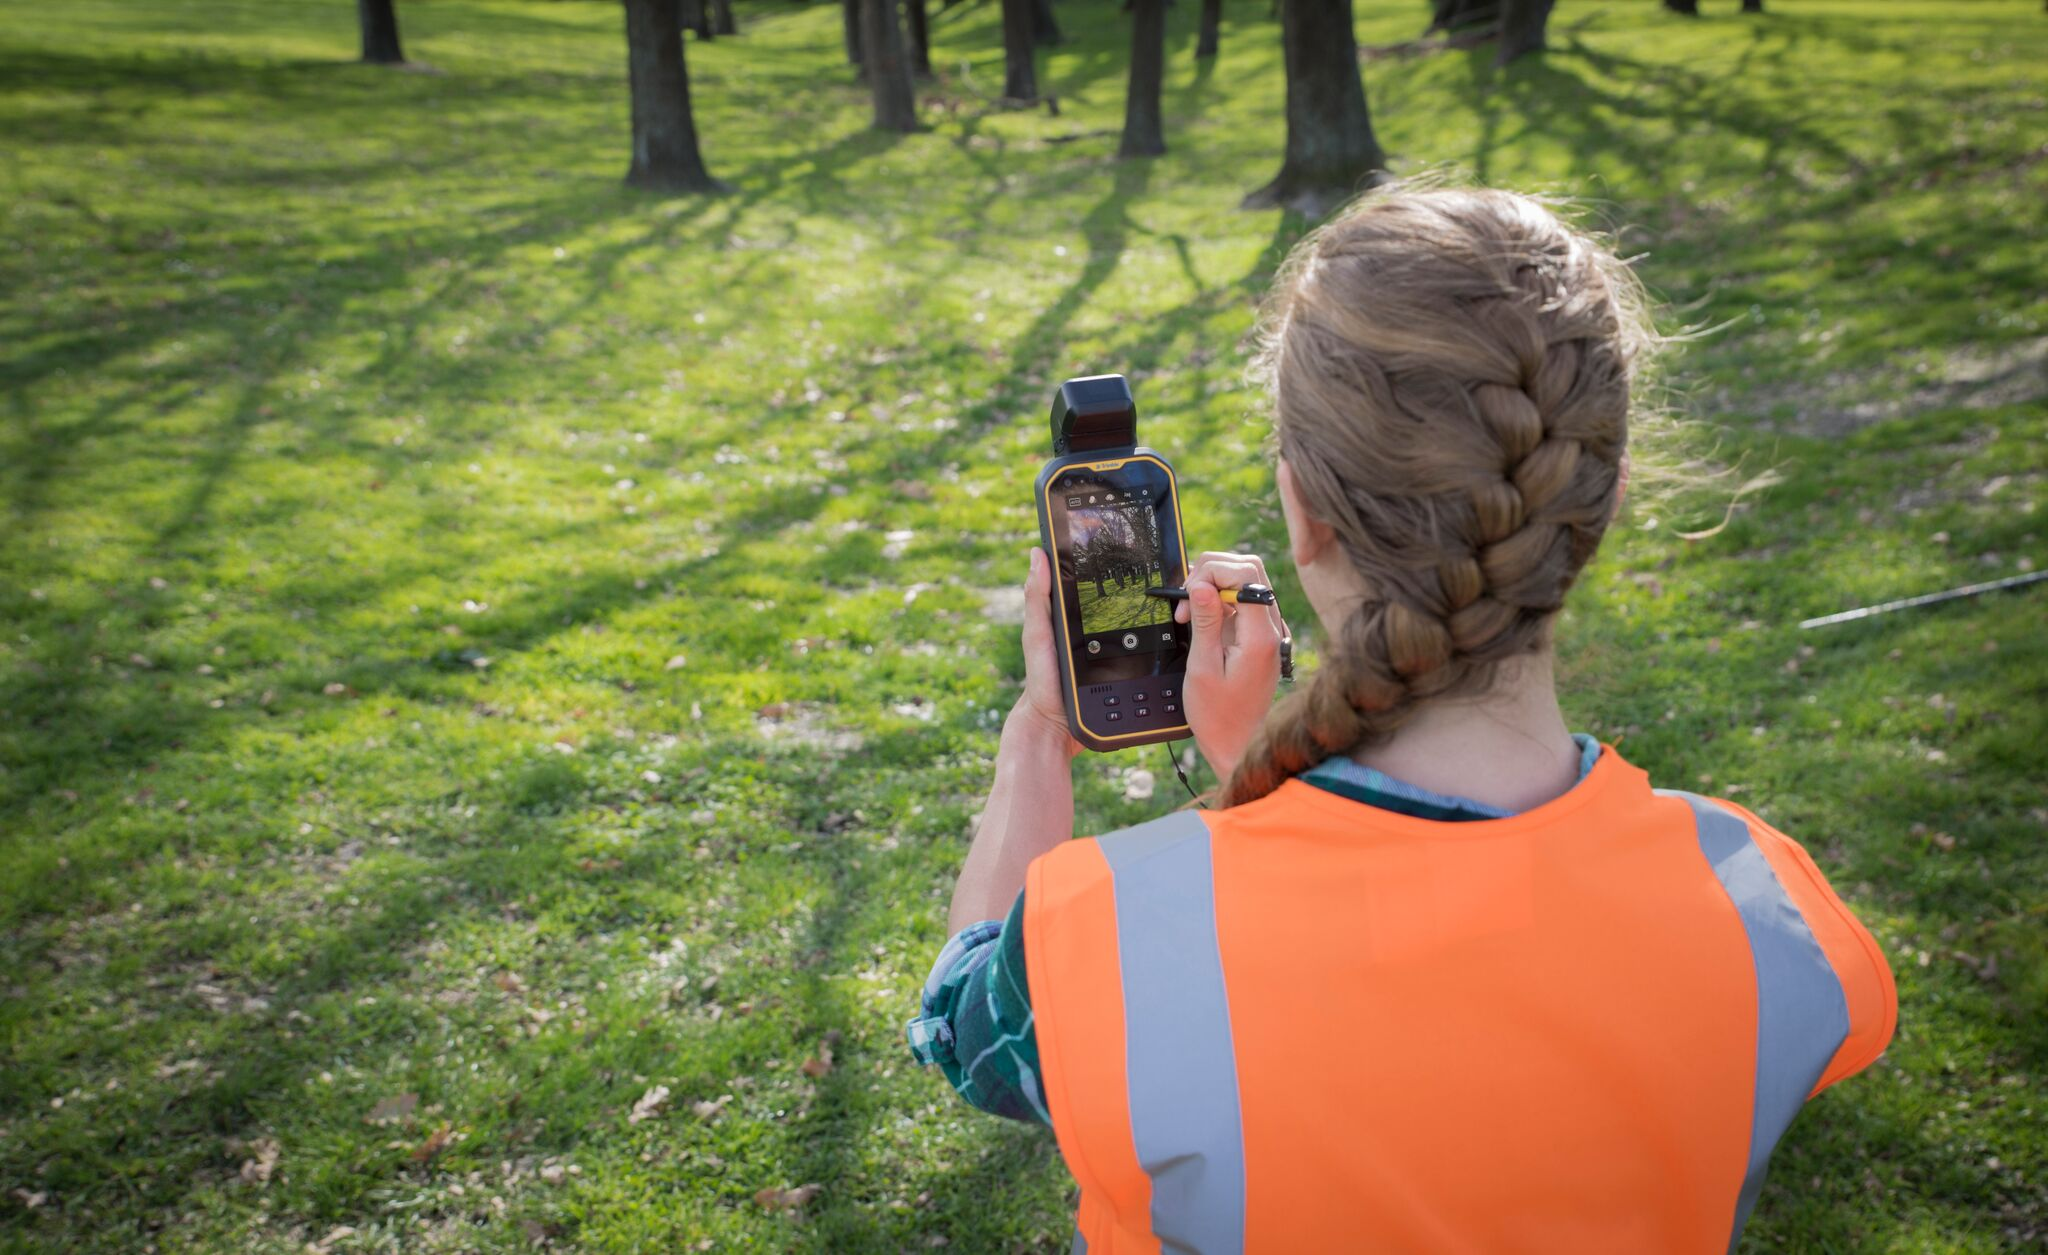 Trimble Introduces New Handheld Computer for Field Data